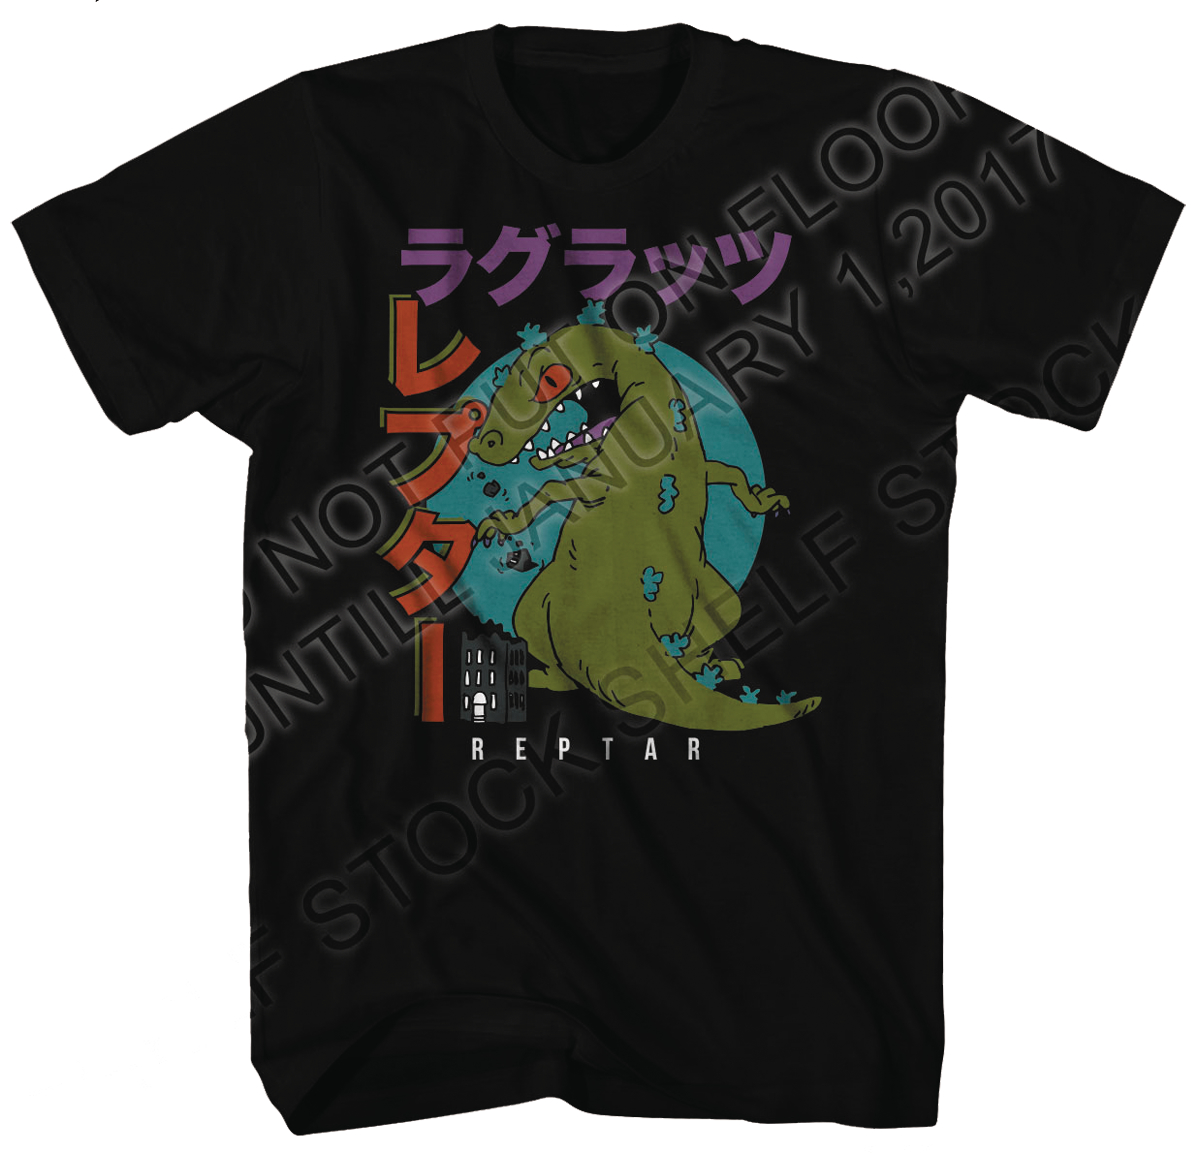 NICKELODEON RUGRATS FAMOUS REPTAR BLACK T/S XXL